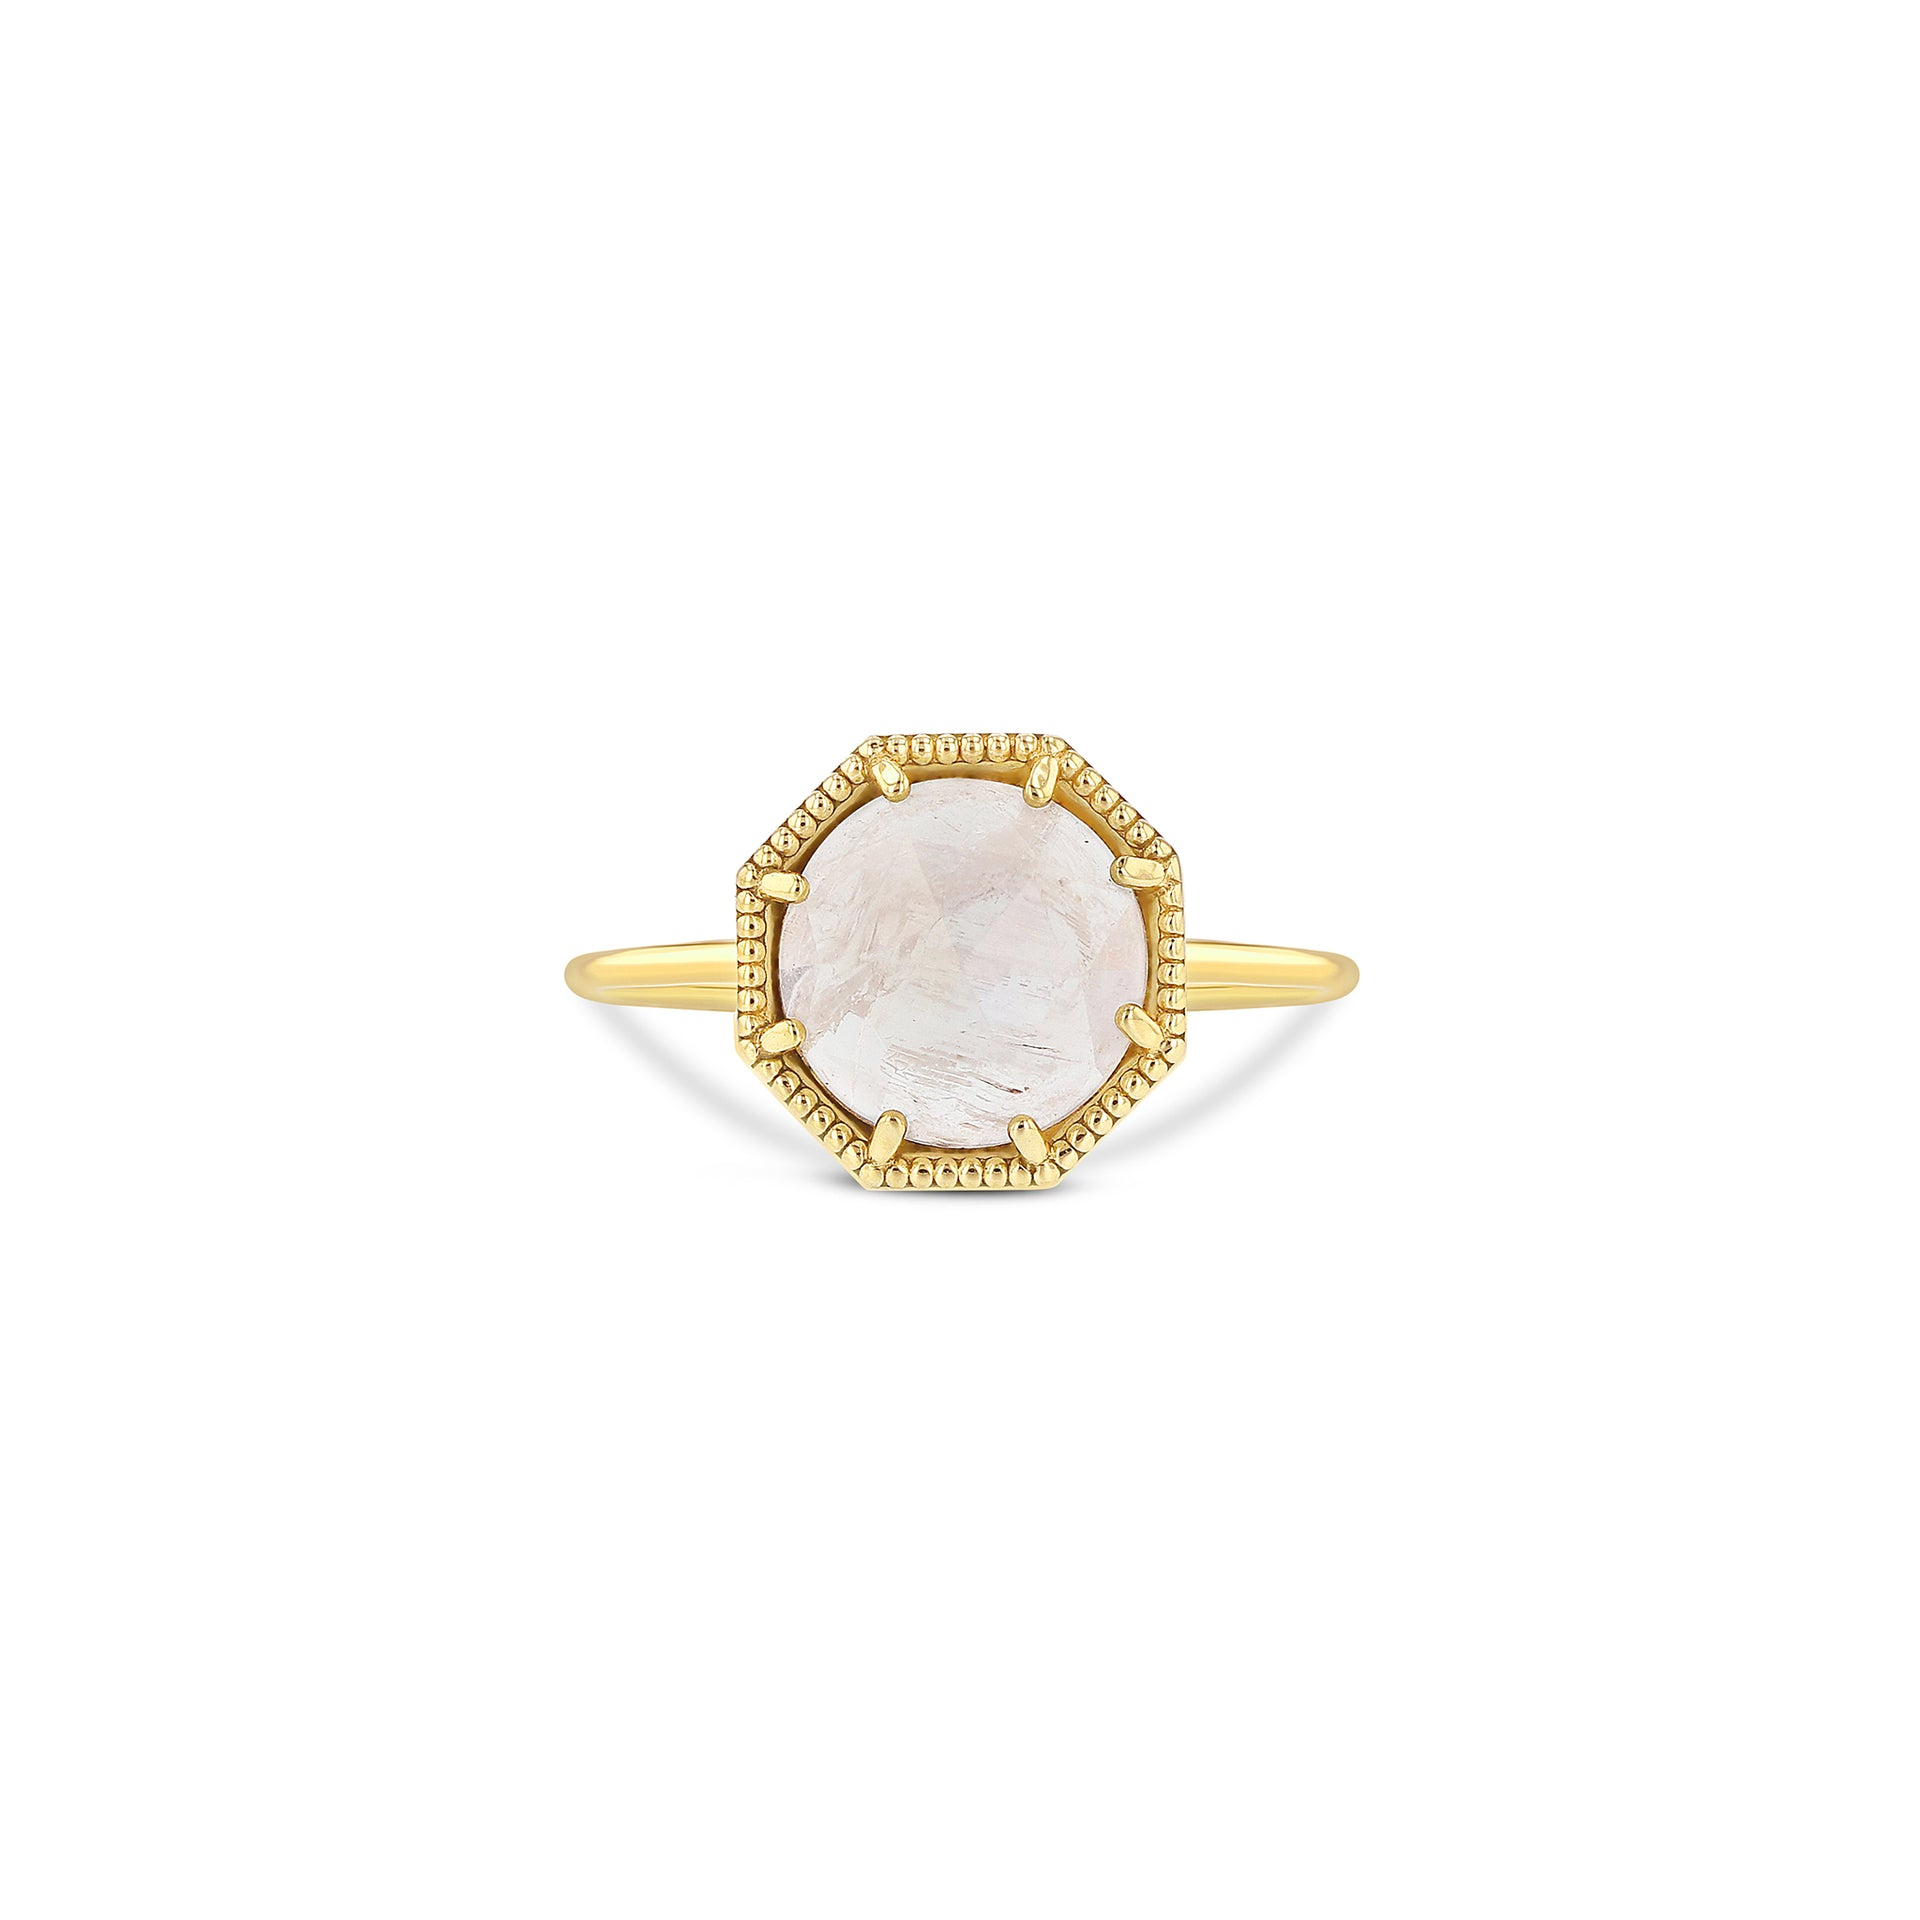 Maman Crown Bezel Moonstone Ring